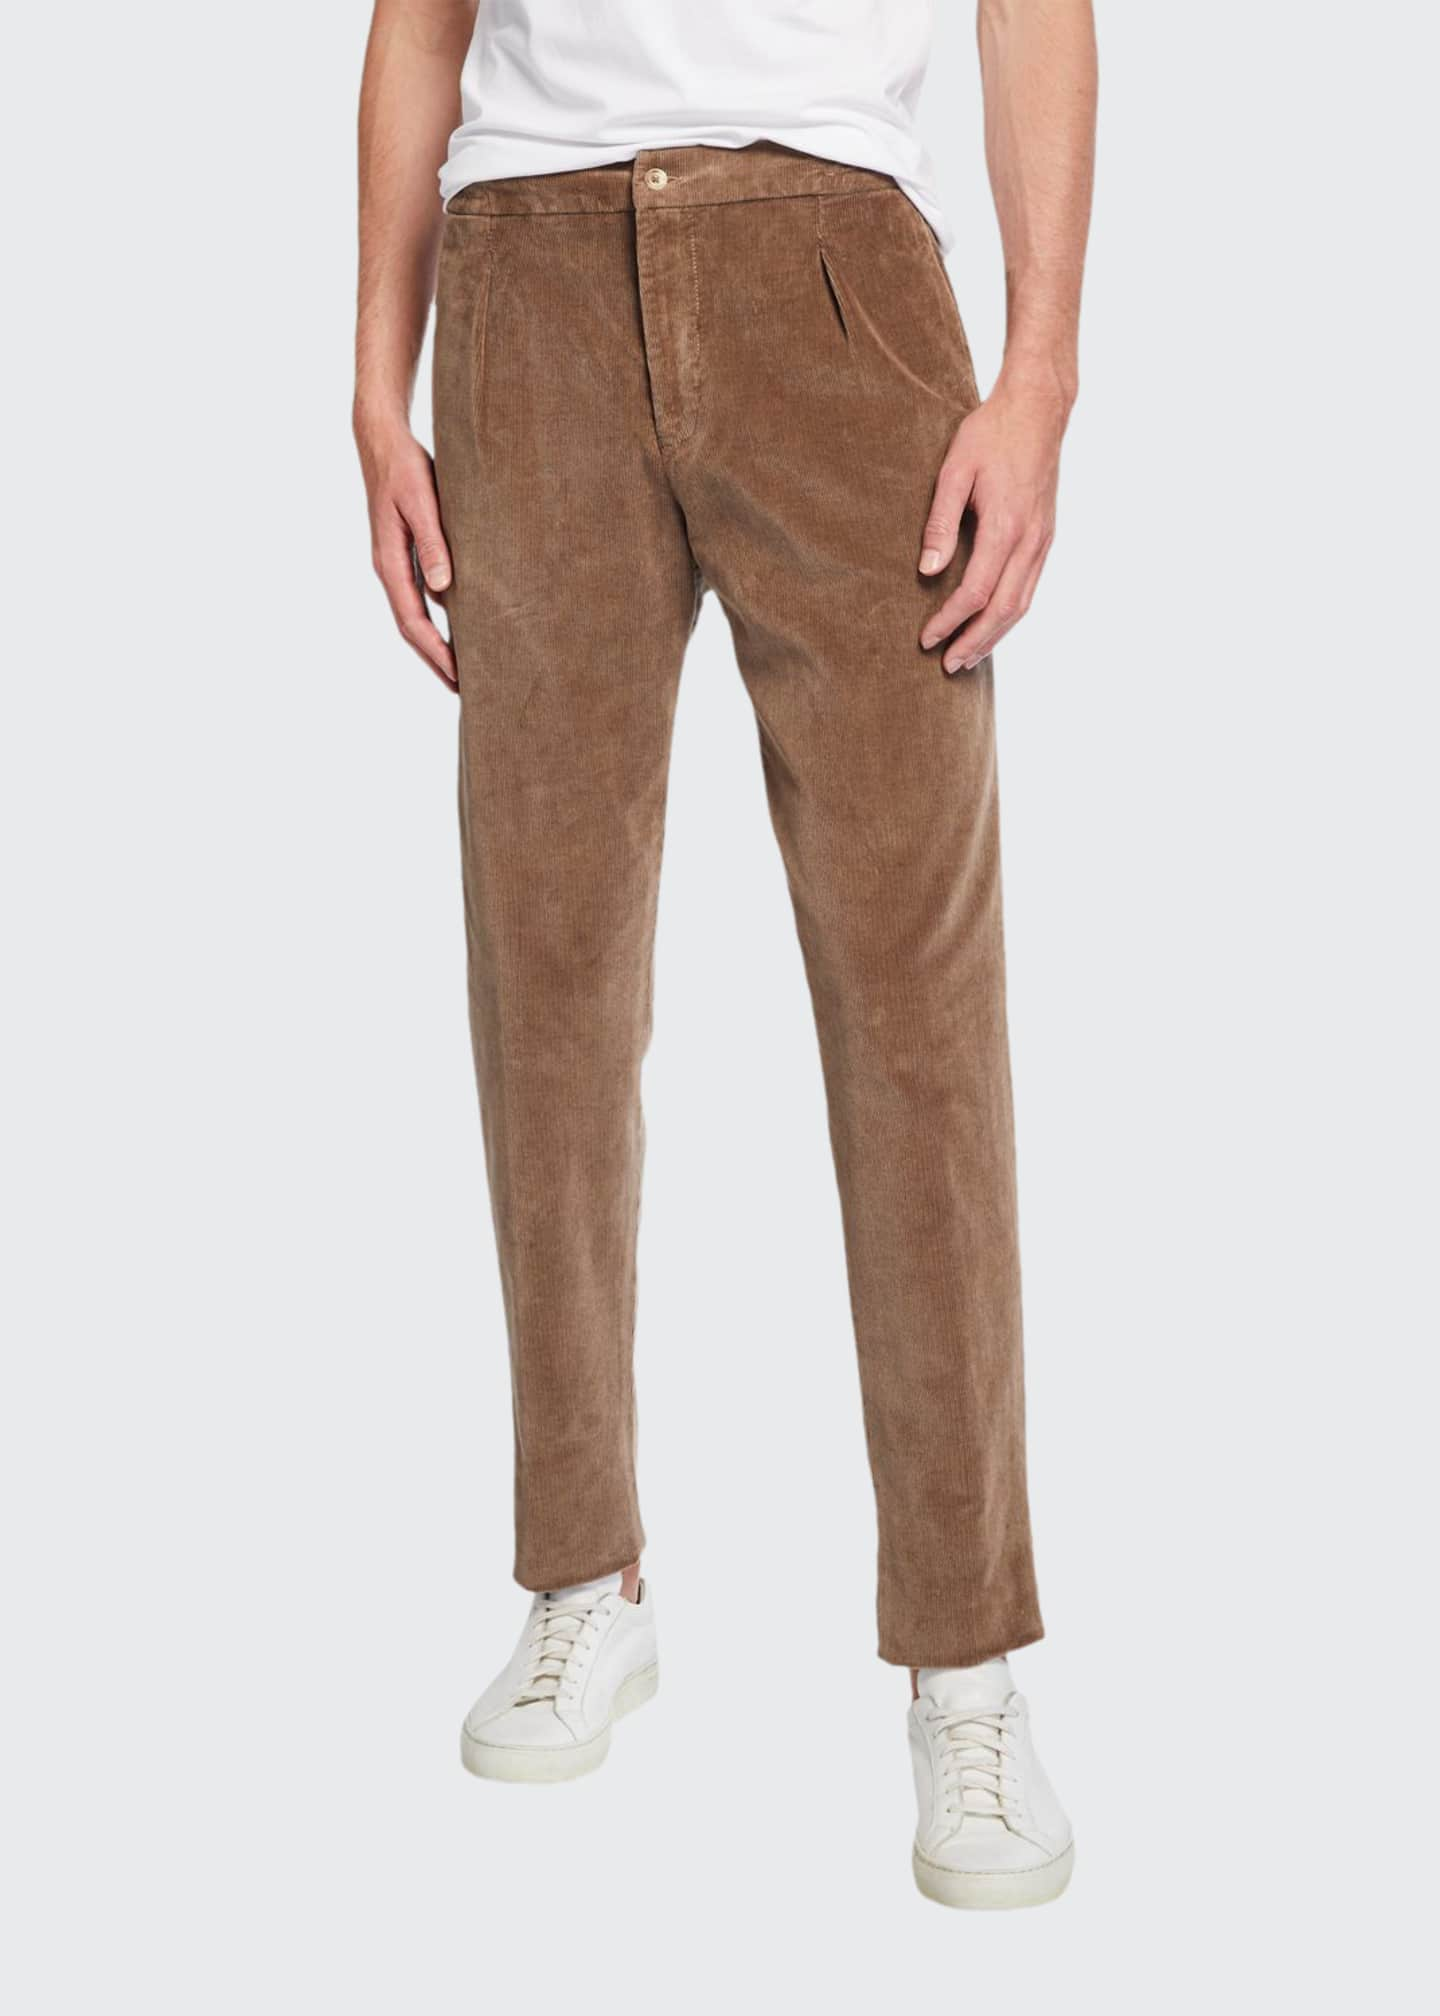 Marco Pescarolo Men's Pleated Corduroy Trousers with Elastic